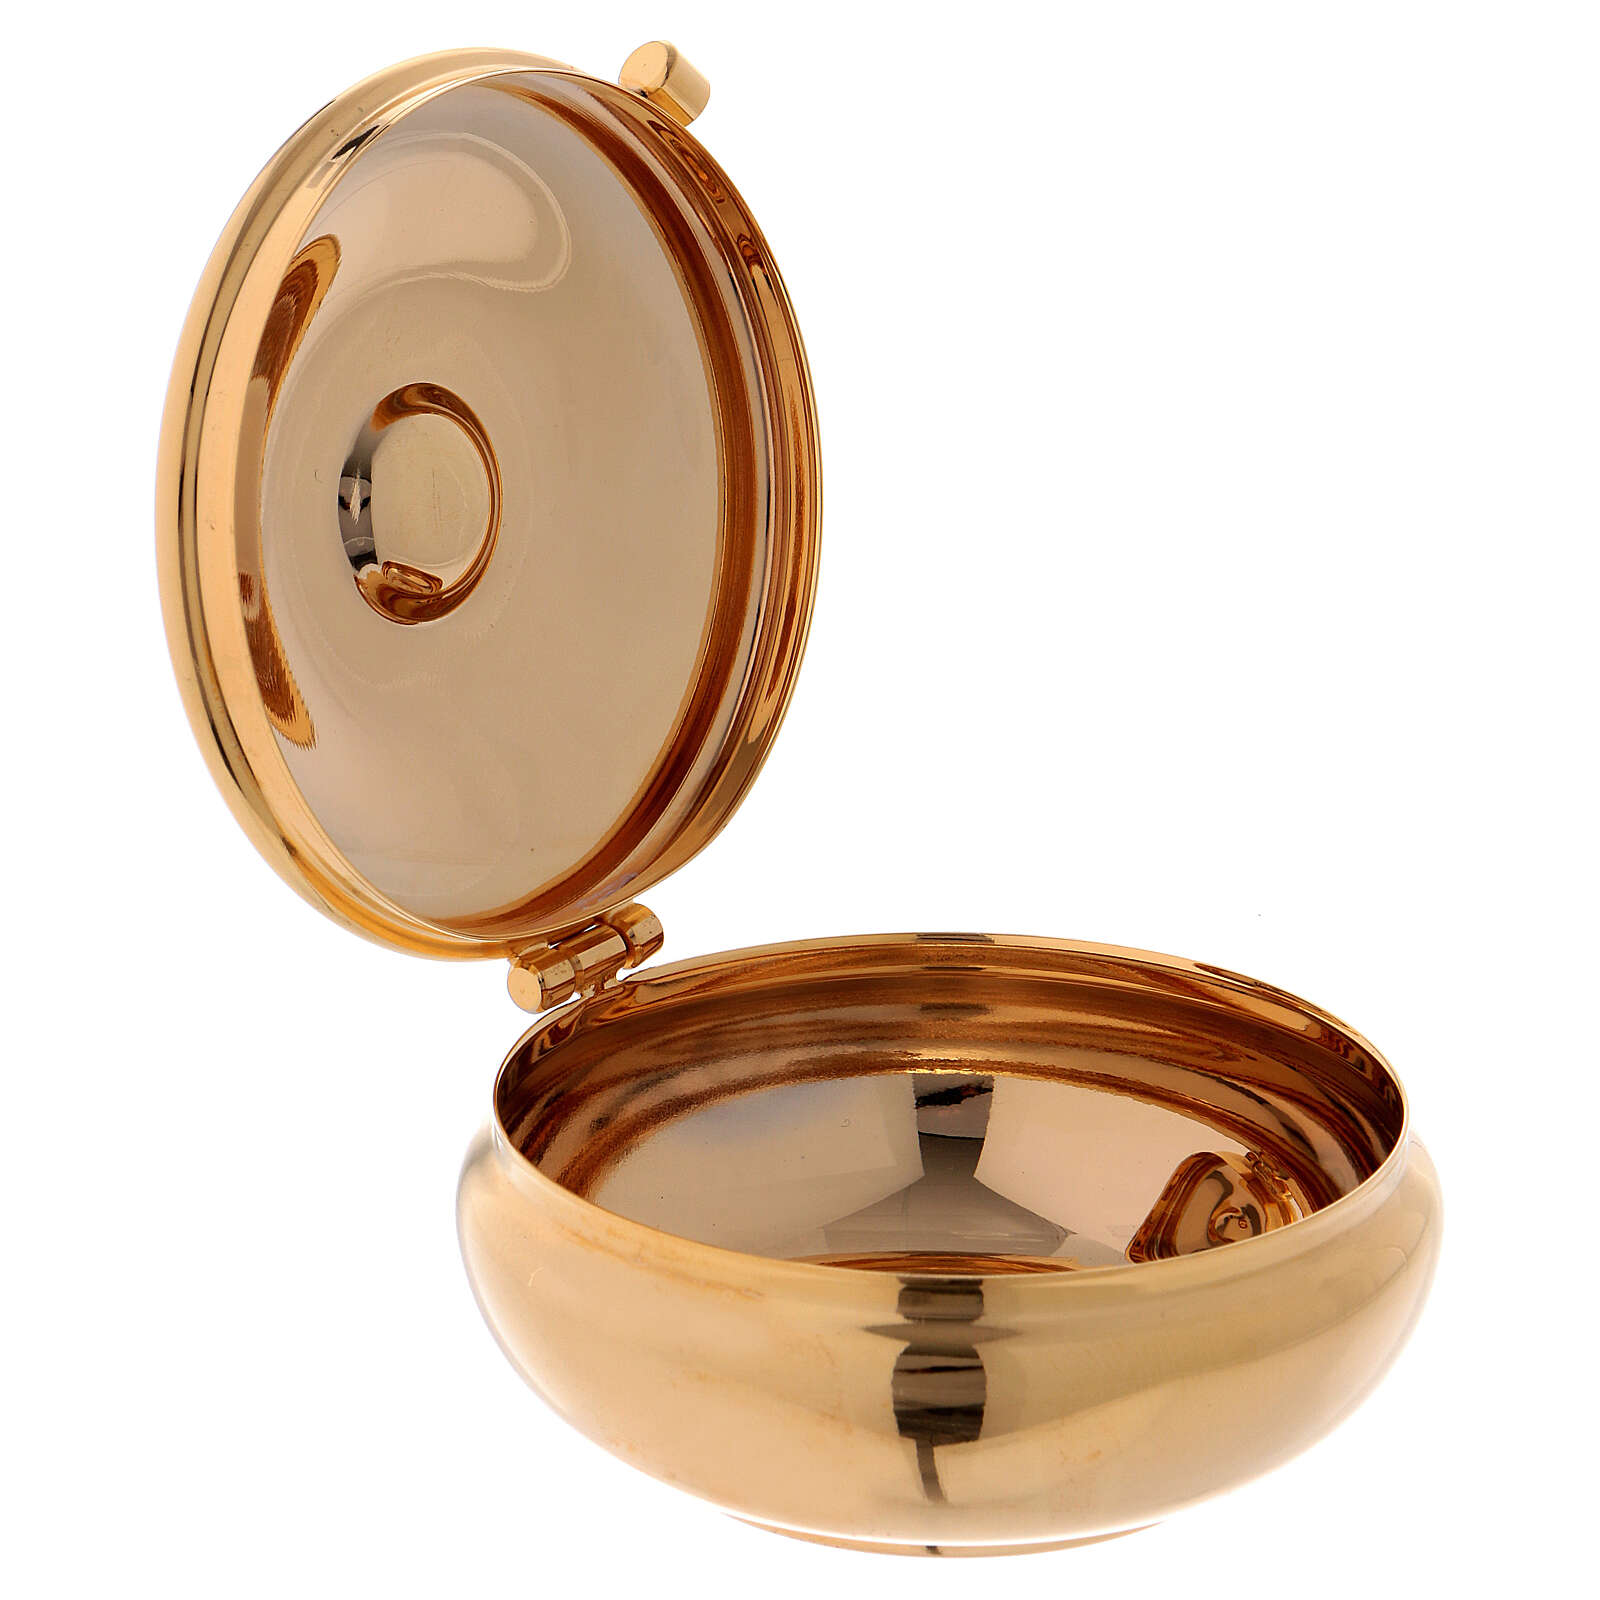 Gold plated pyx with red burse 2 1/2 in diameter 3